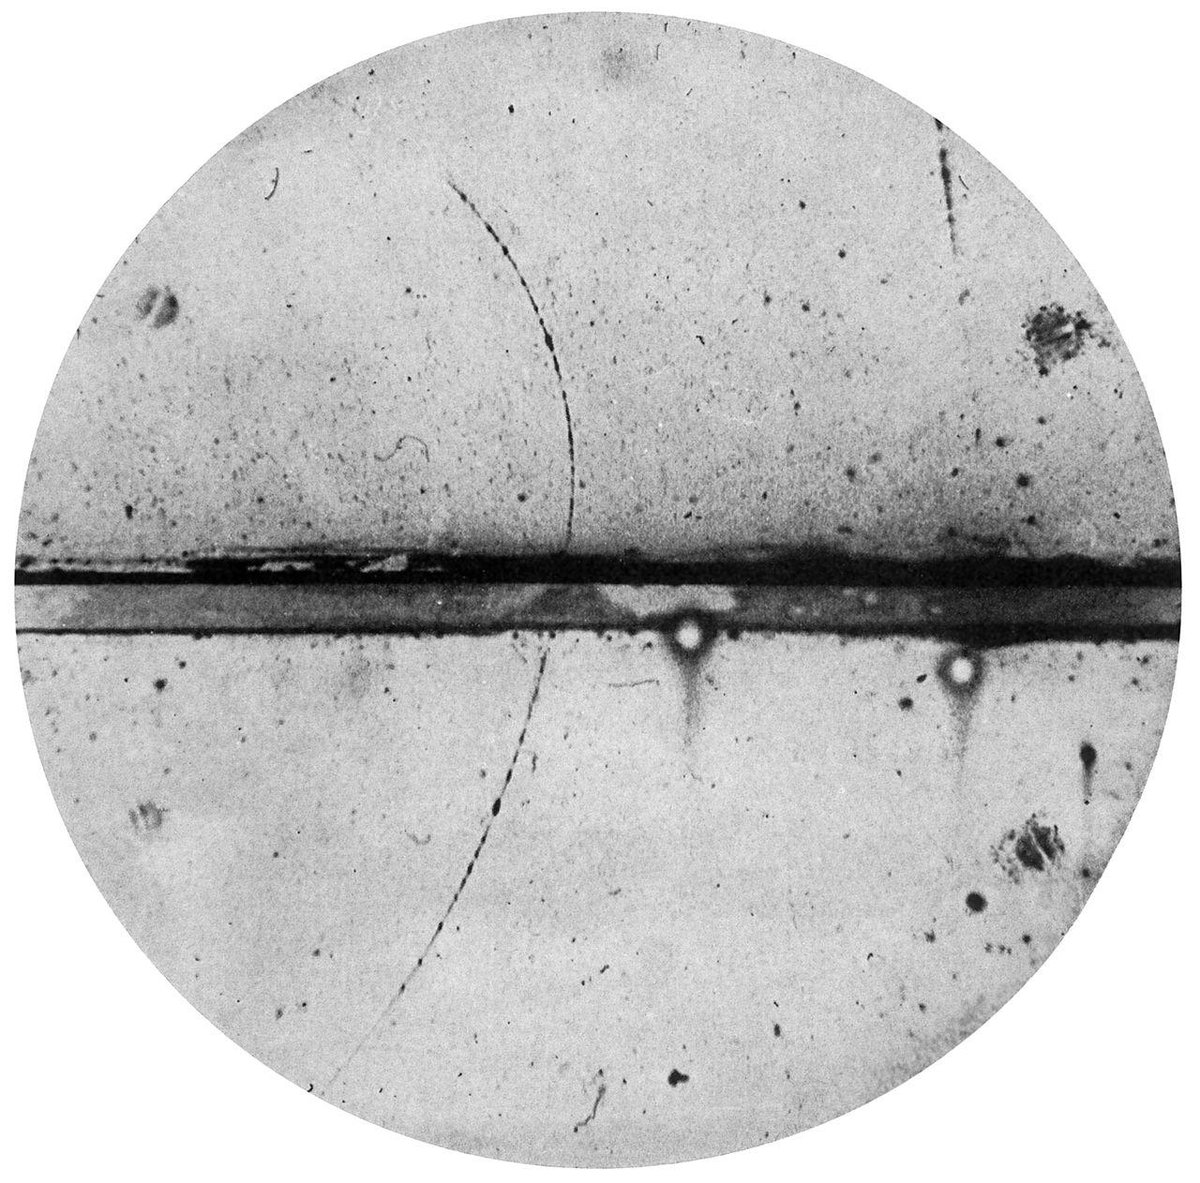 The Positive Electron: 85 years ago Carl Andersons discovery of the positron was published #OTD.   Image: Cloud chamber photograph by Anderson, the first positron ever observed.  The deflection and direction of the particles ion trail indicate it is a positron. #NobelPrize